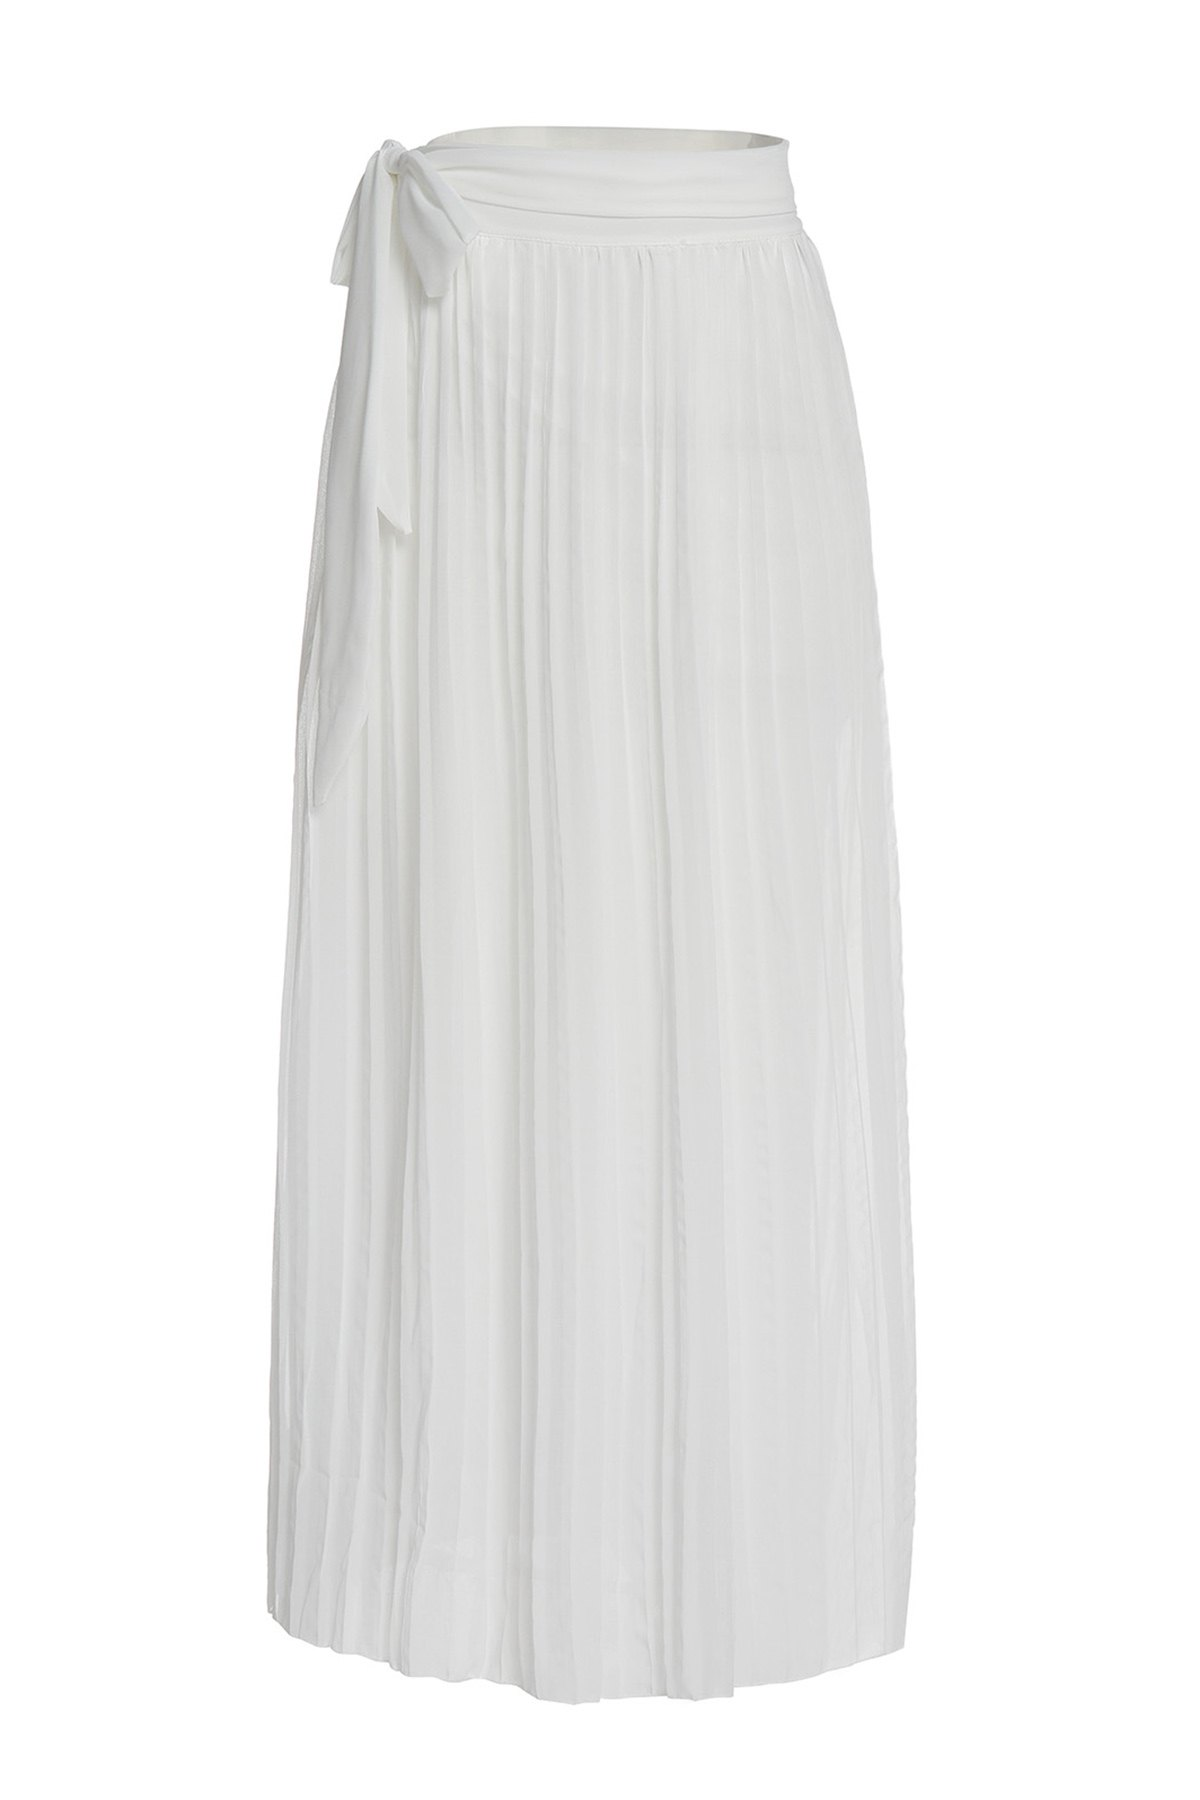 Sexy High Slit White Flounced Skirt For Women - WHITE S